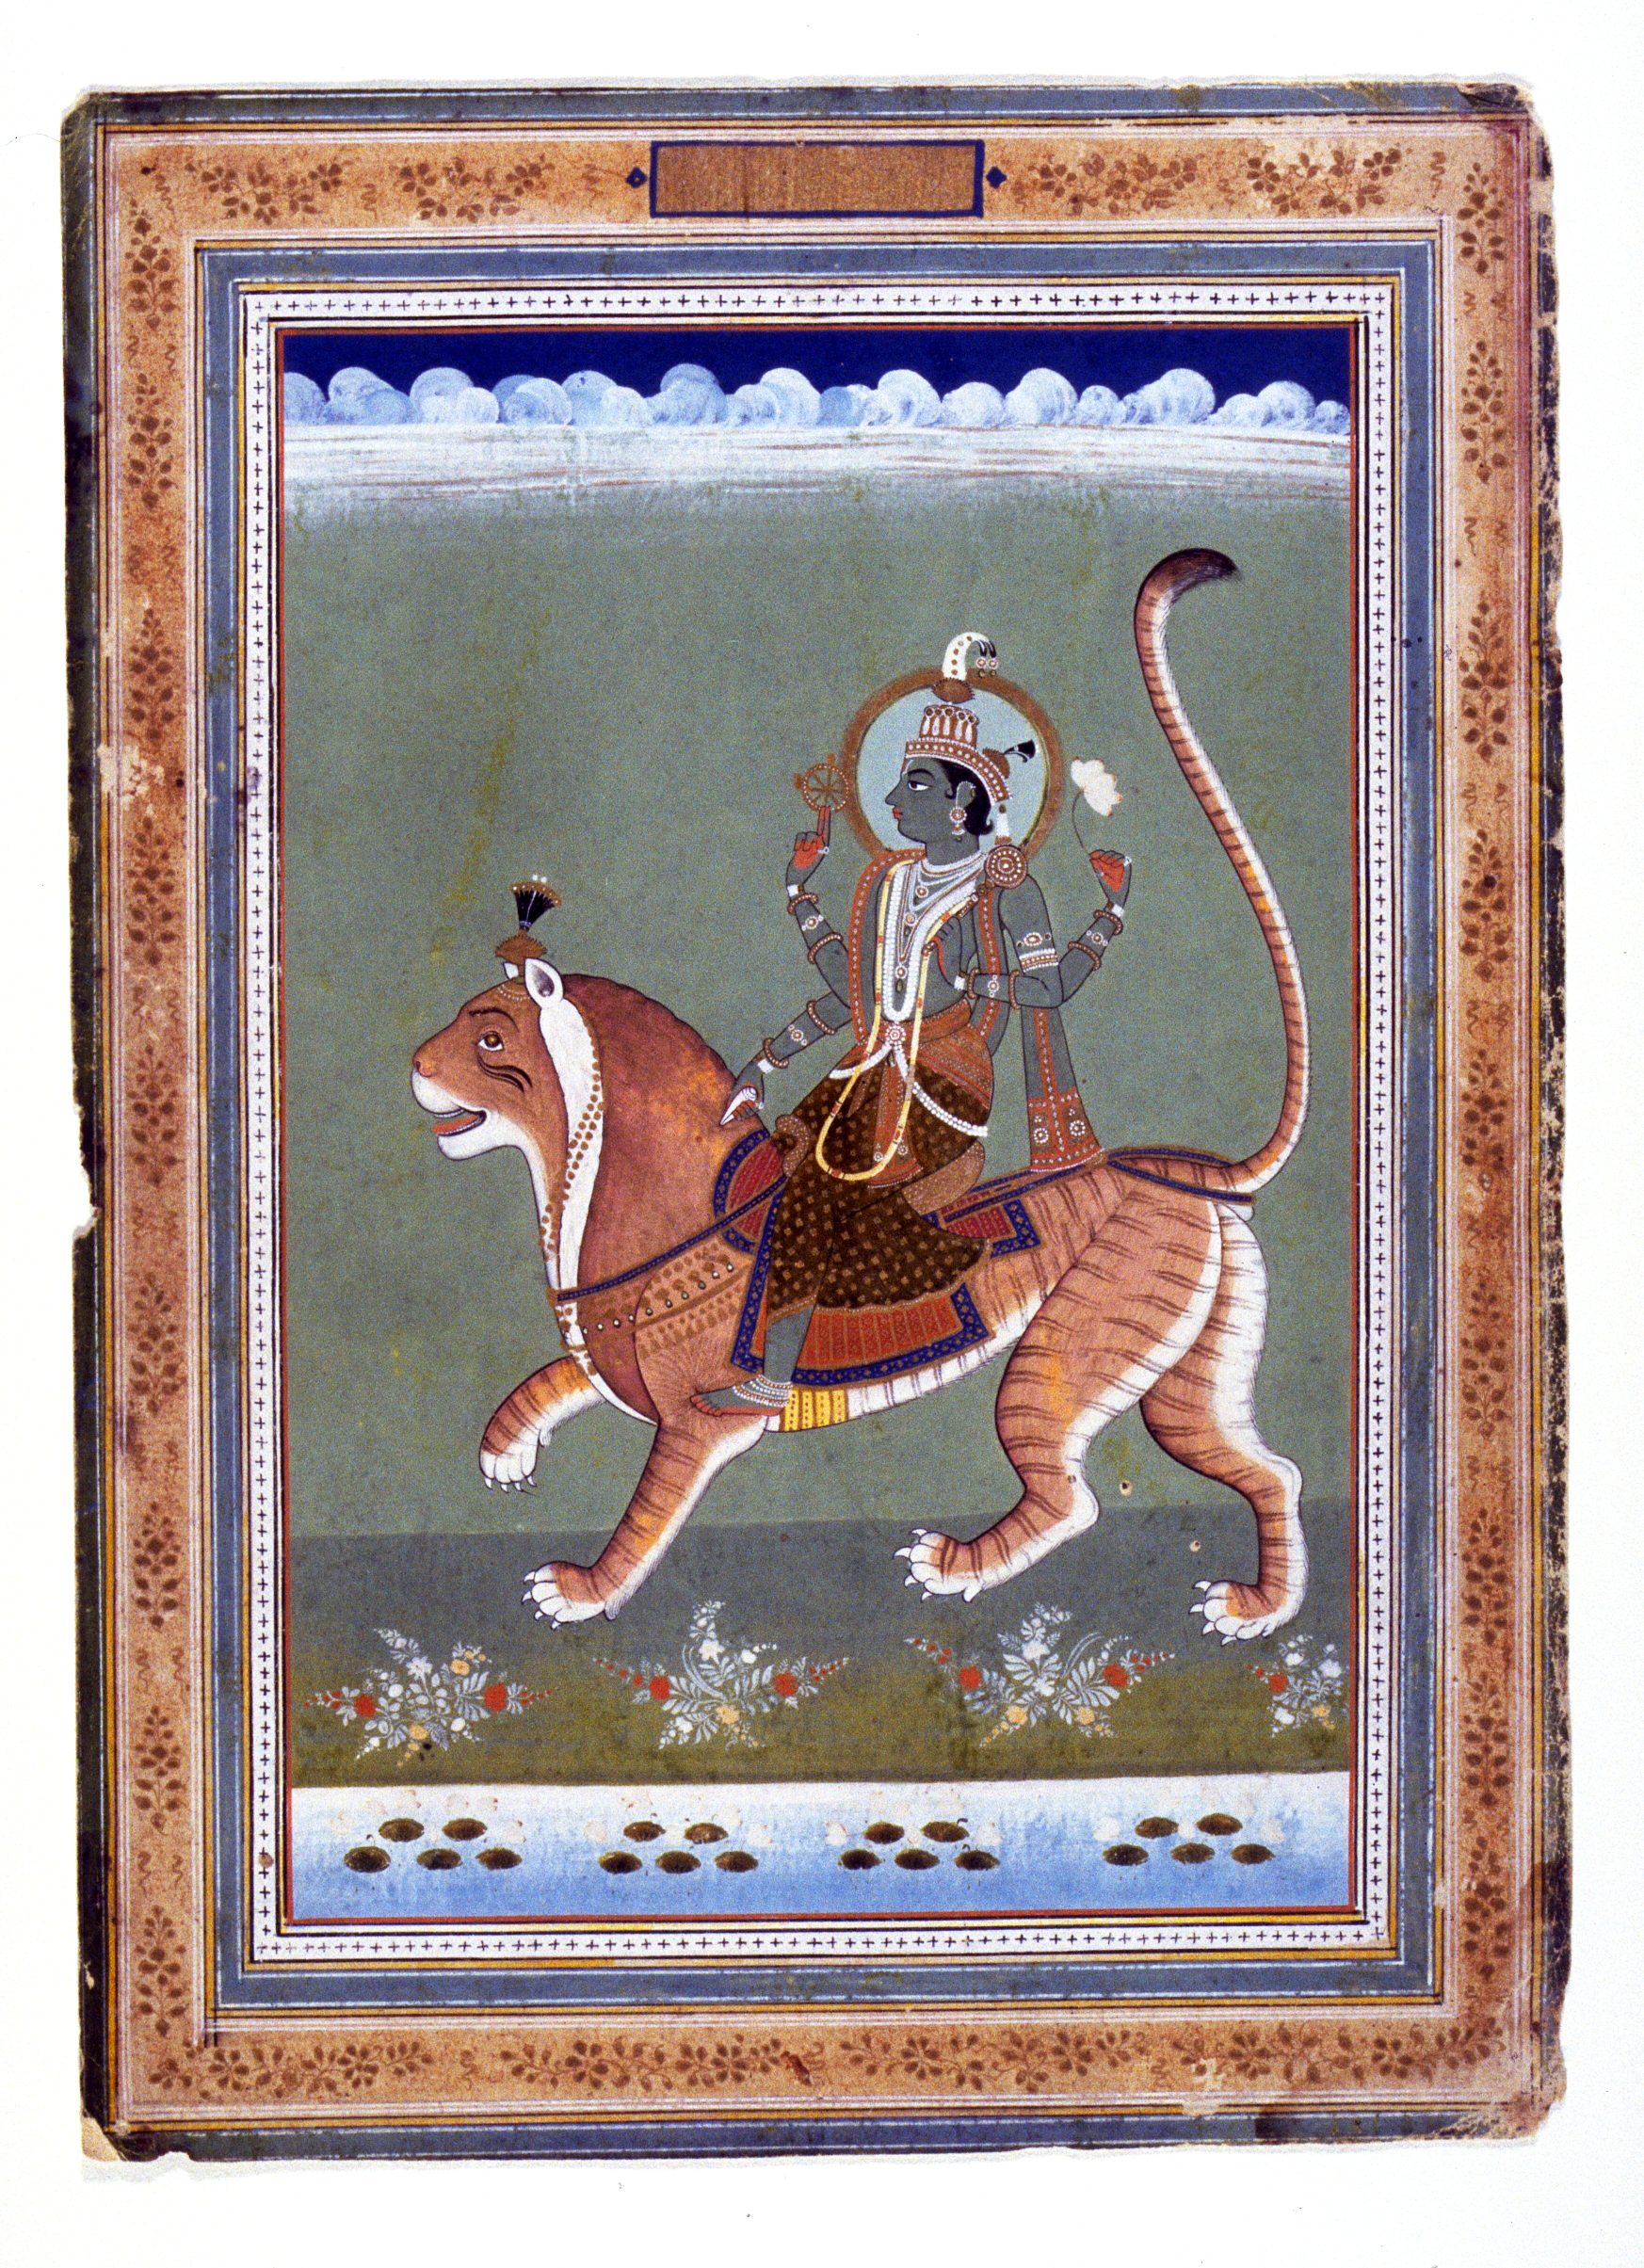 Image 4 Page from an Indian zodiac manuscript, Figure Mounted on a Tiger, possibly Saturn, India, Rajasthan, Jaipur school circa 1840, ink, opaque watercolor and gold on paper